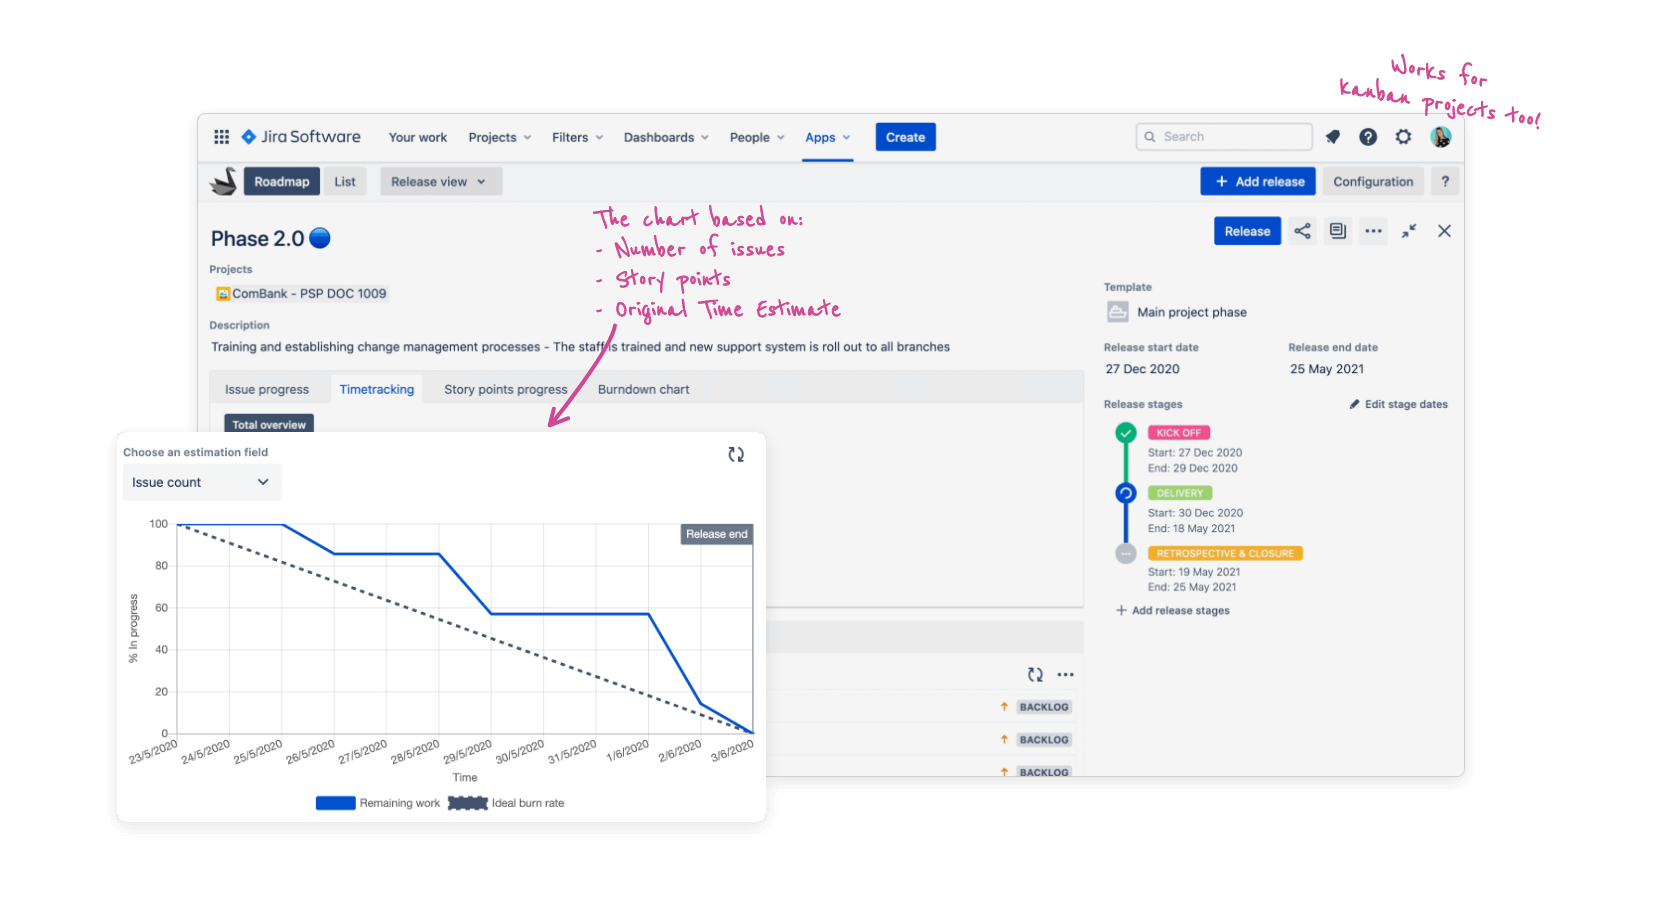 Swanly feature for Jira work management - burndown chart for issues and releases